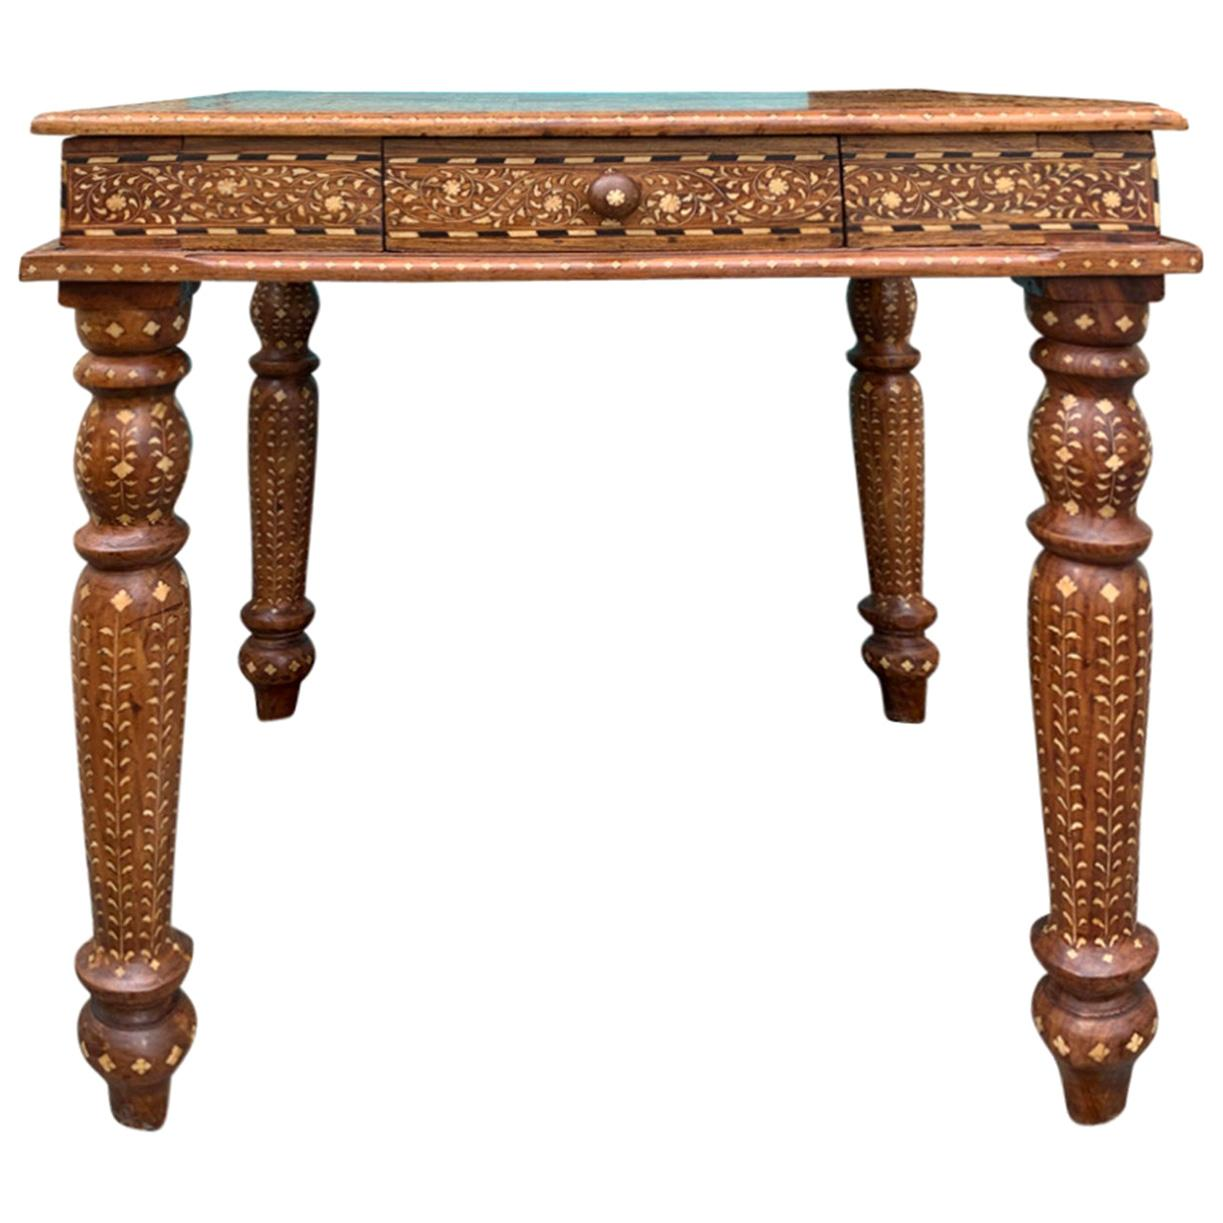 20th Century Heavily Inlaid Teak & Satinwood Square Game Table, Checkerboard Top